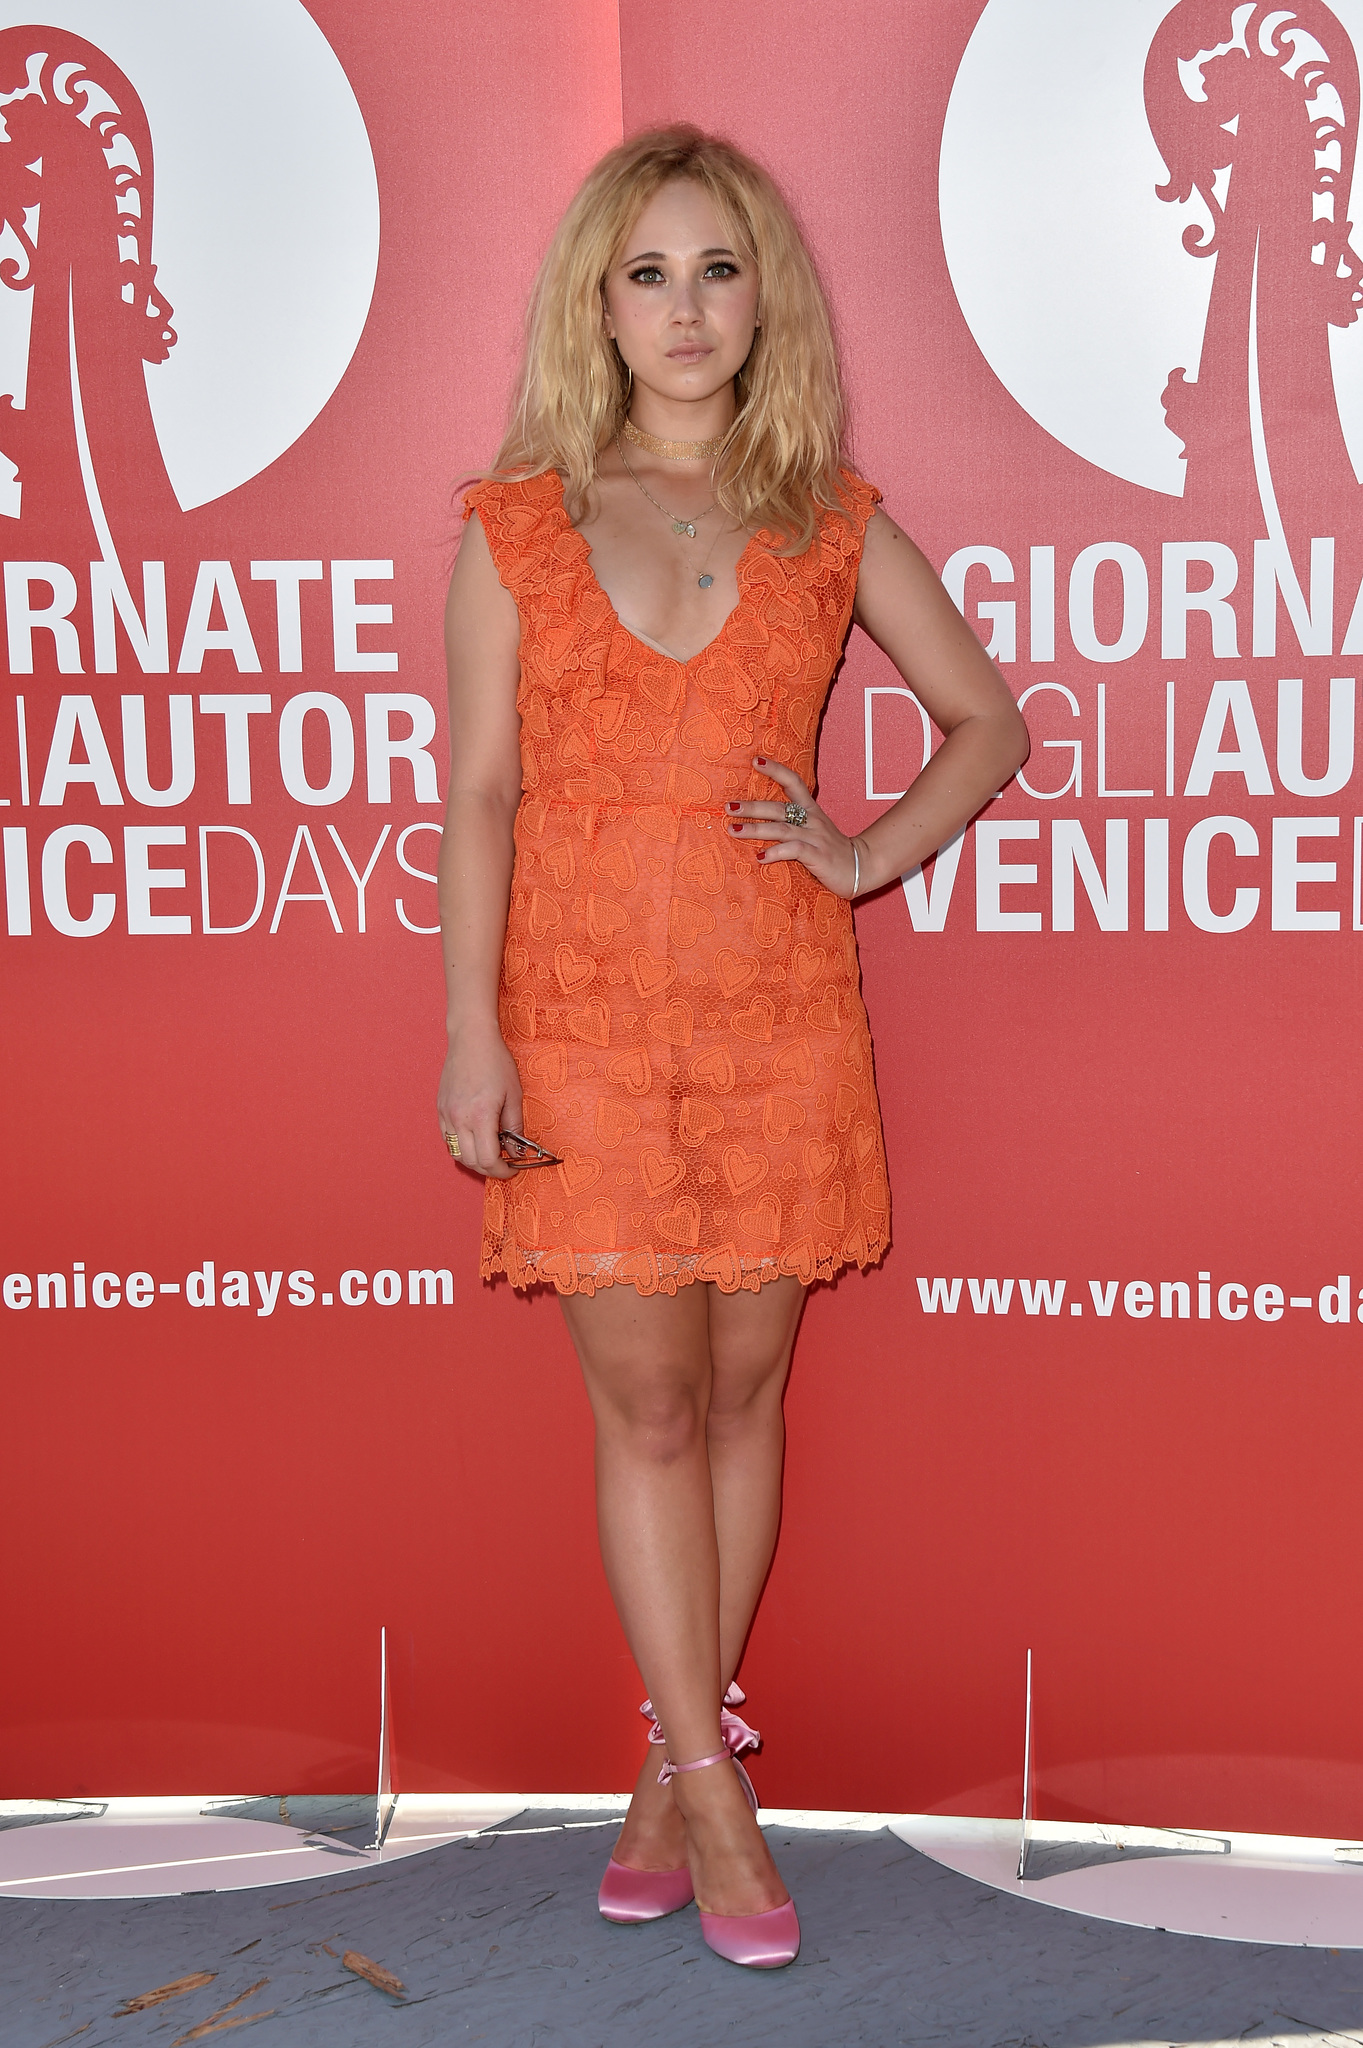 Selfie Legs Juno Temple (born 1989)  nude (21 images), Instagram, cleavage